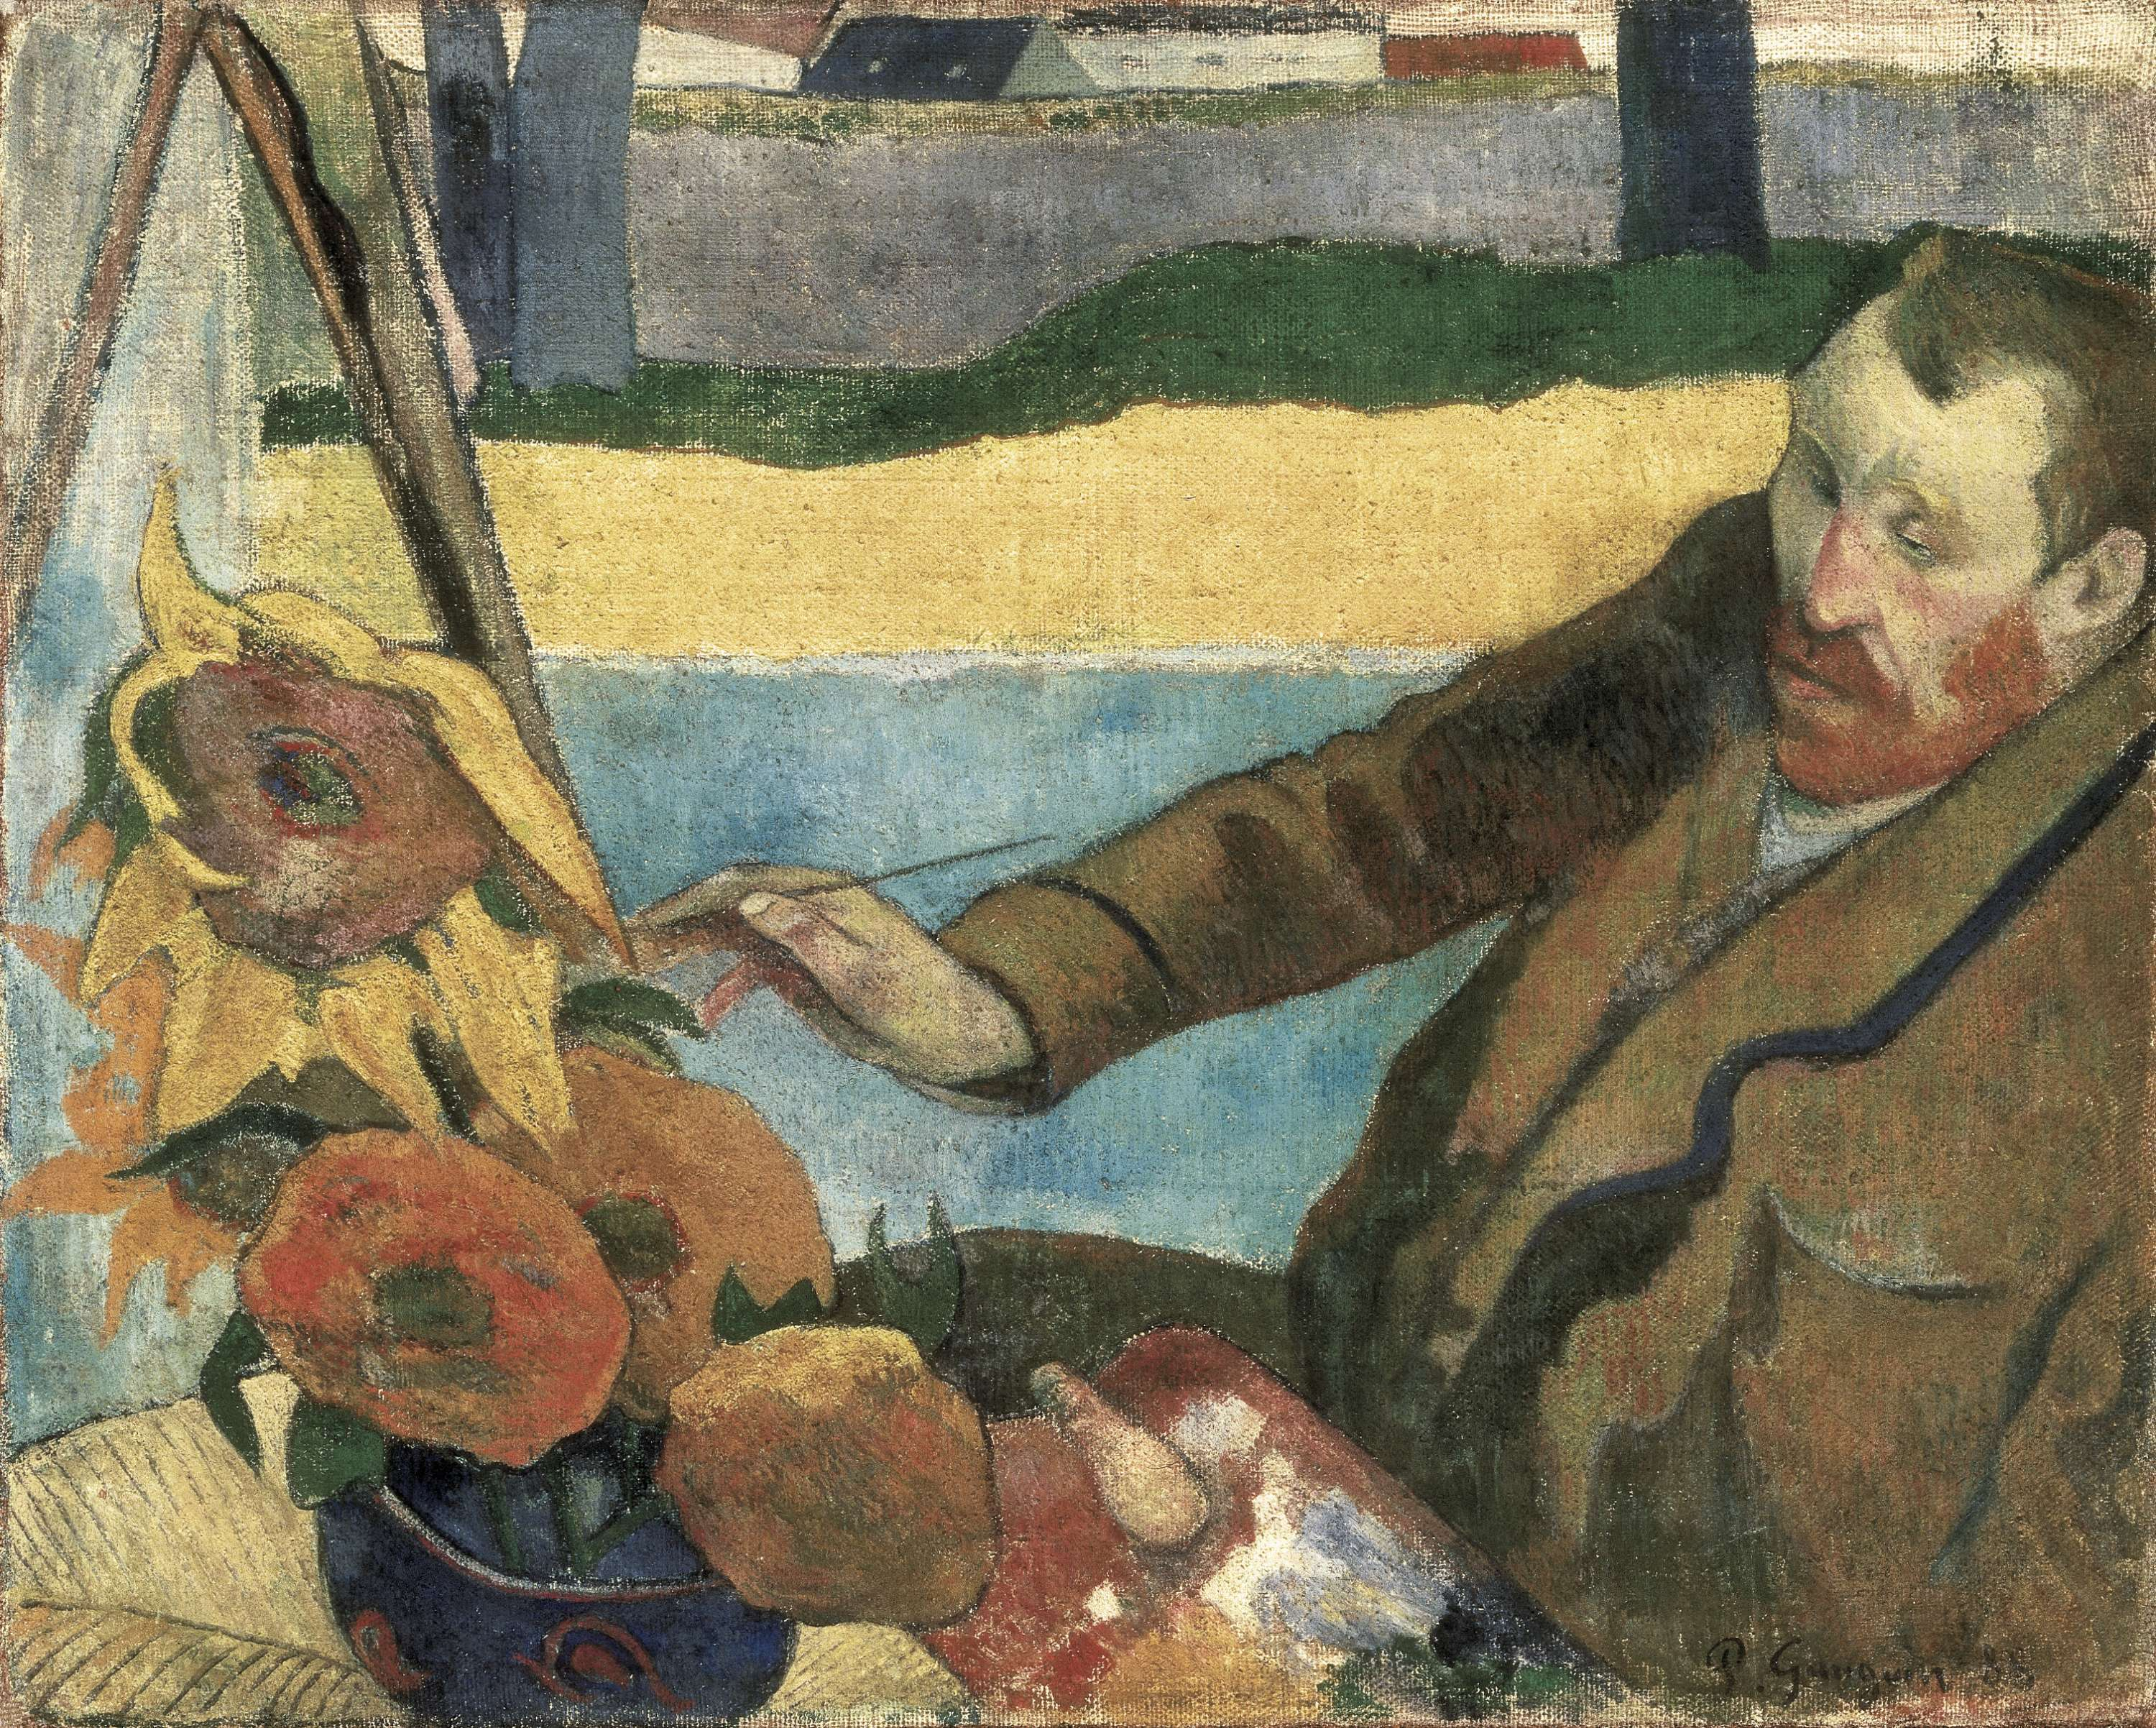 Van gogh par paul gauguin